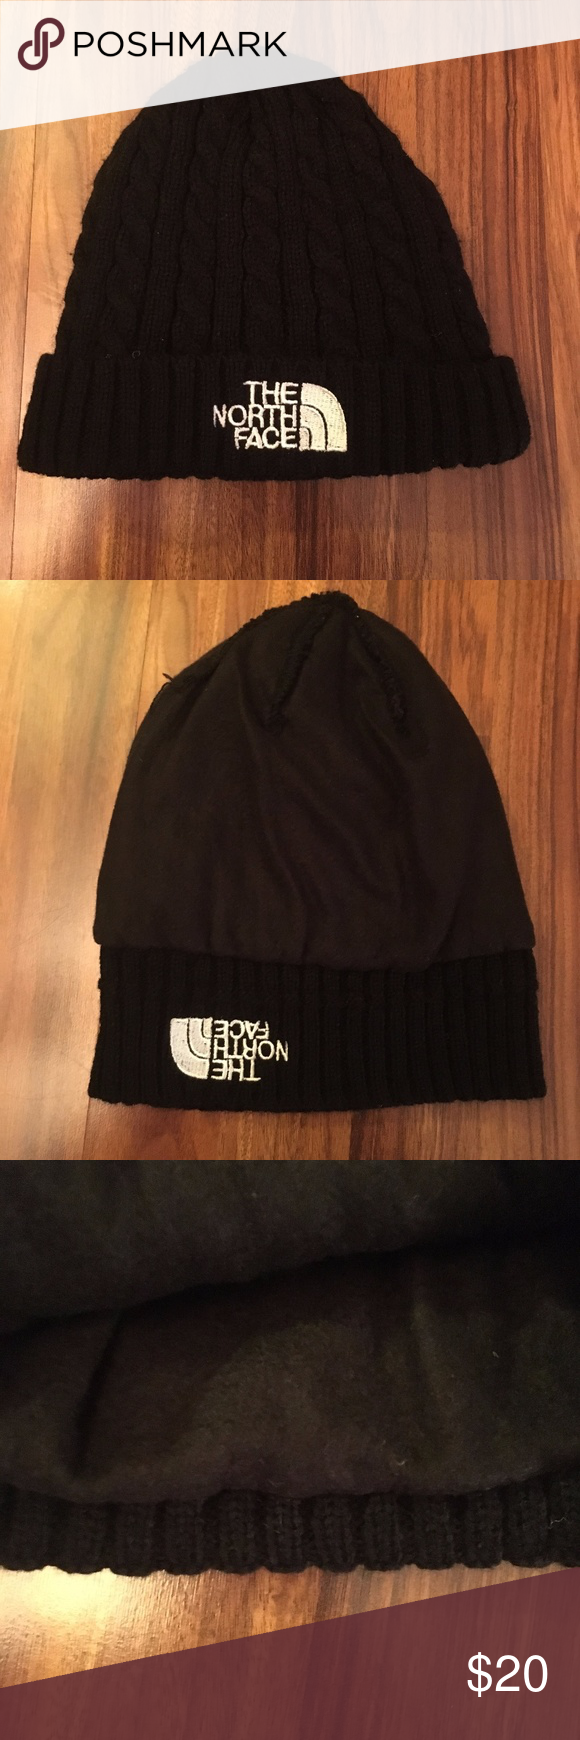 The North Face Beanie   Skully Cap - Very Soft! Condition - 8 10! No signs  of cuts flaws or stains. Very Soft Size - One Size Color - Black The North  Face ... 132f7cd9f9e